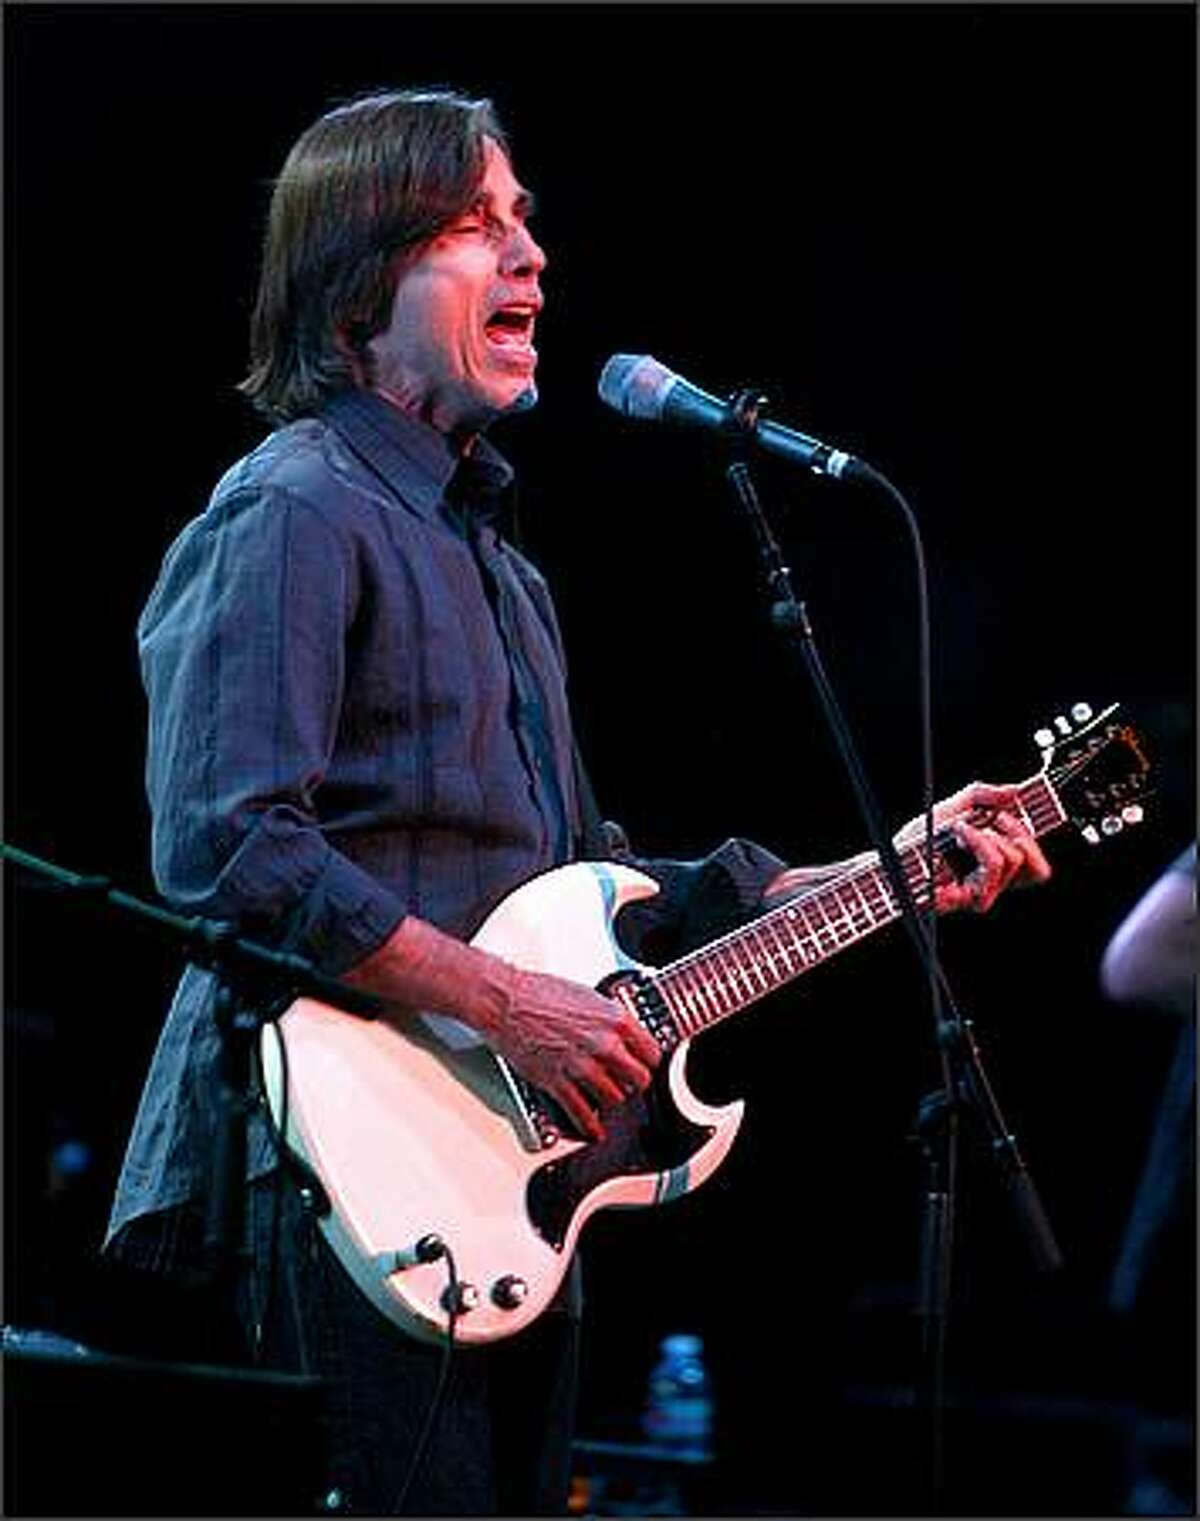 Jackson Browne belts out a song.